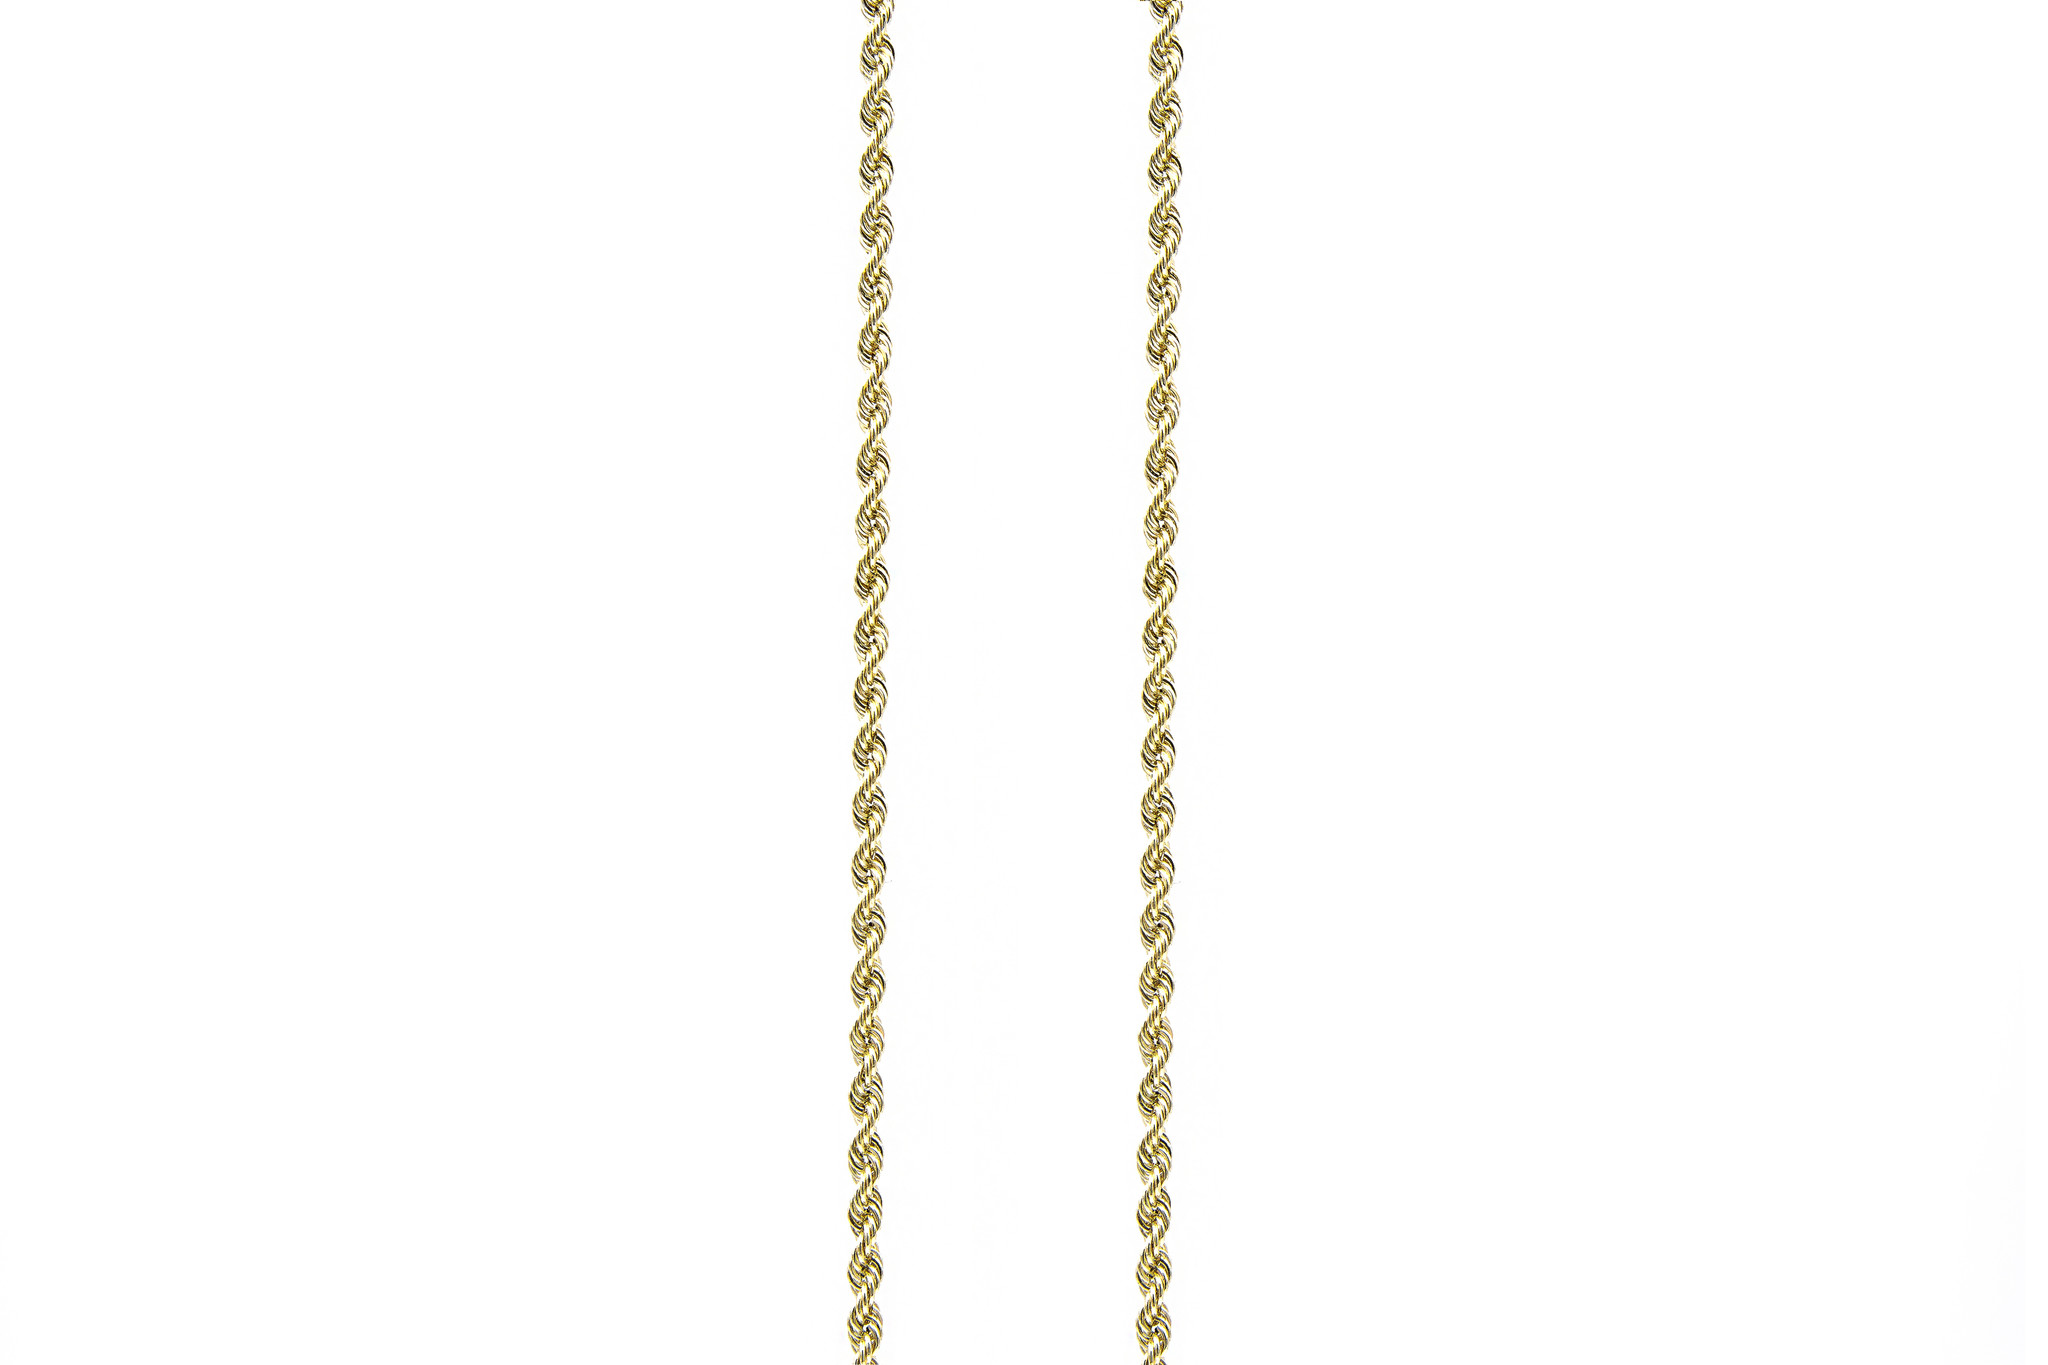 Rope Chain 14k-3mm-1